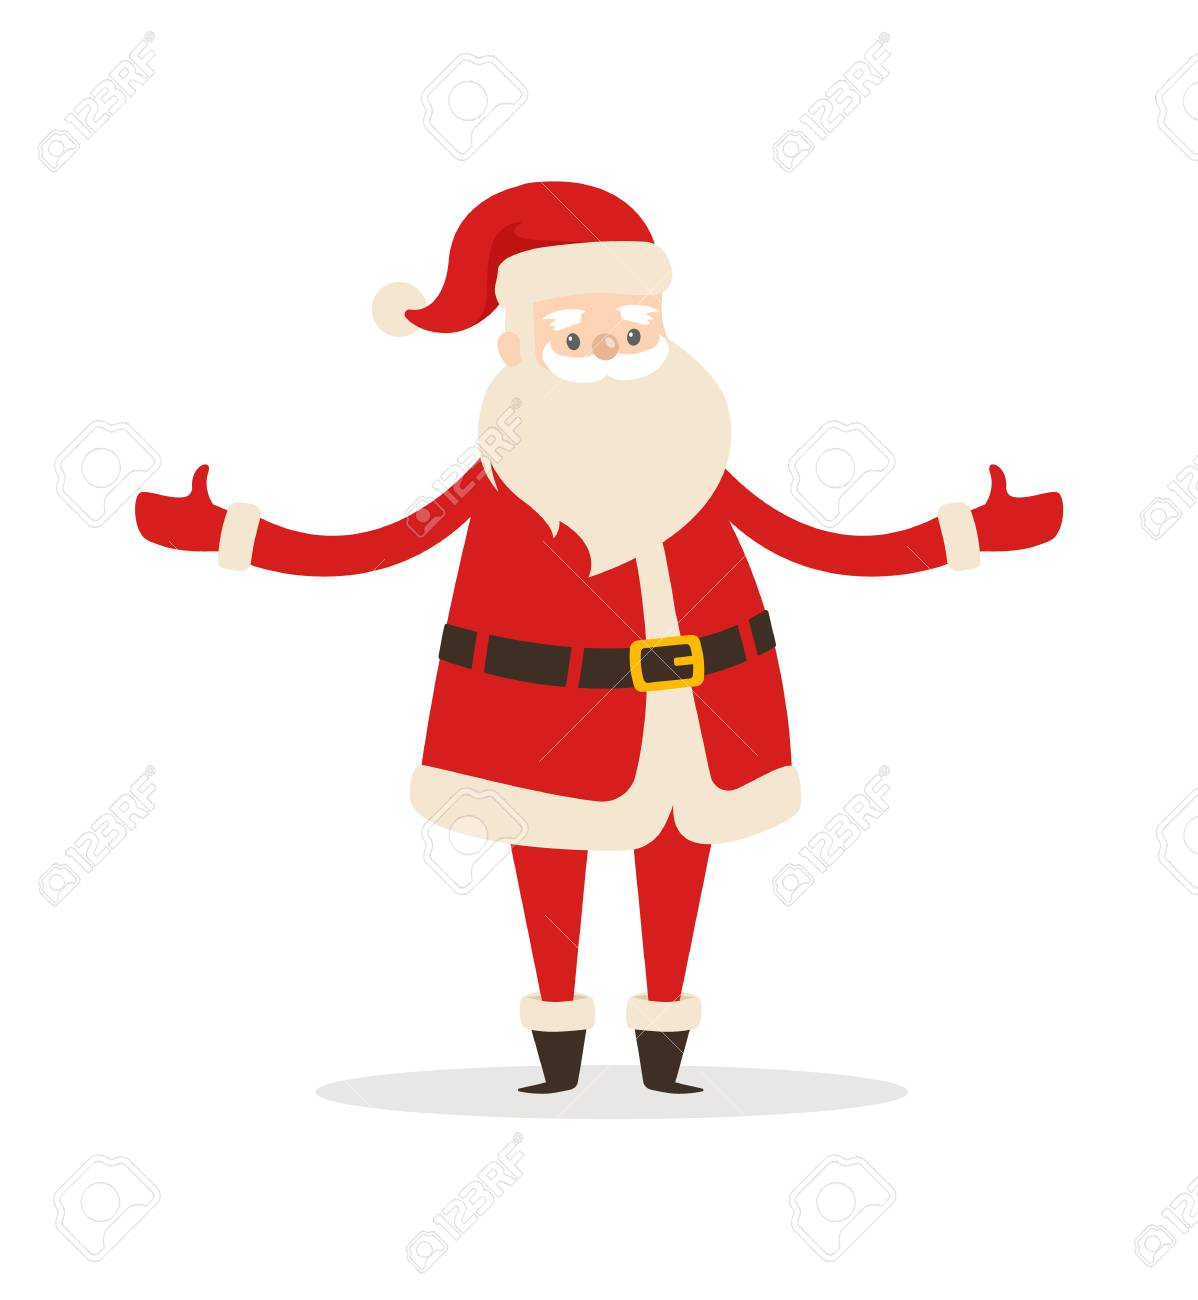 Father Christmas Cartoon Images.Santa Claus Cartoon Character With Wide Open Arms Vector Illustration